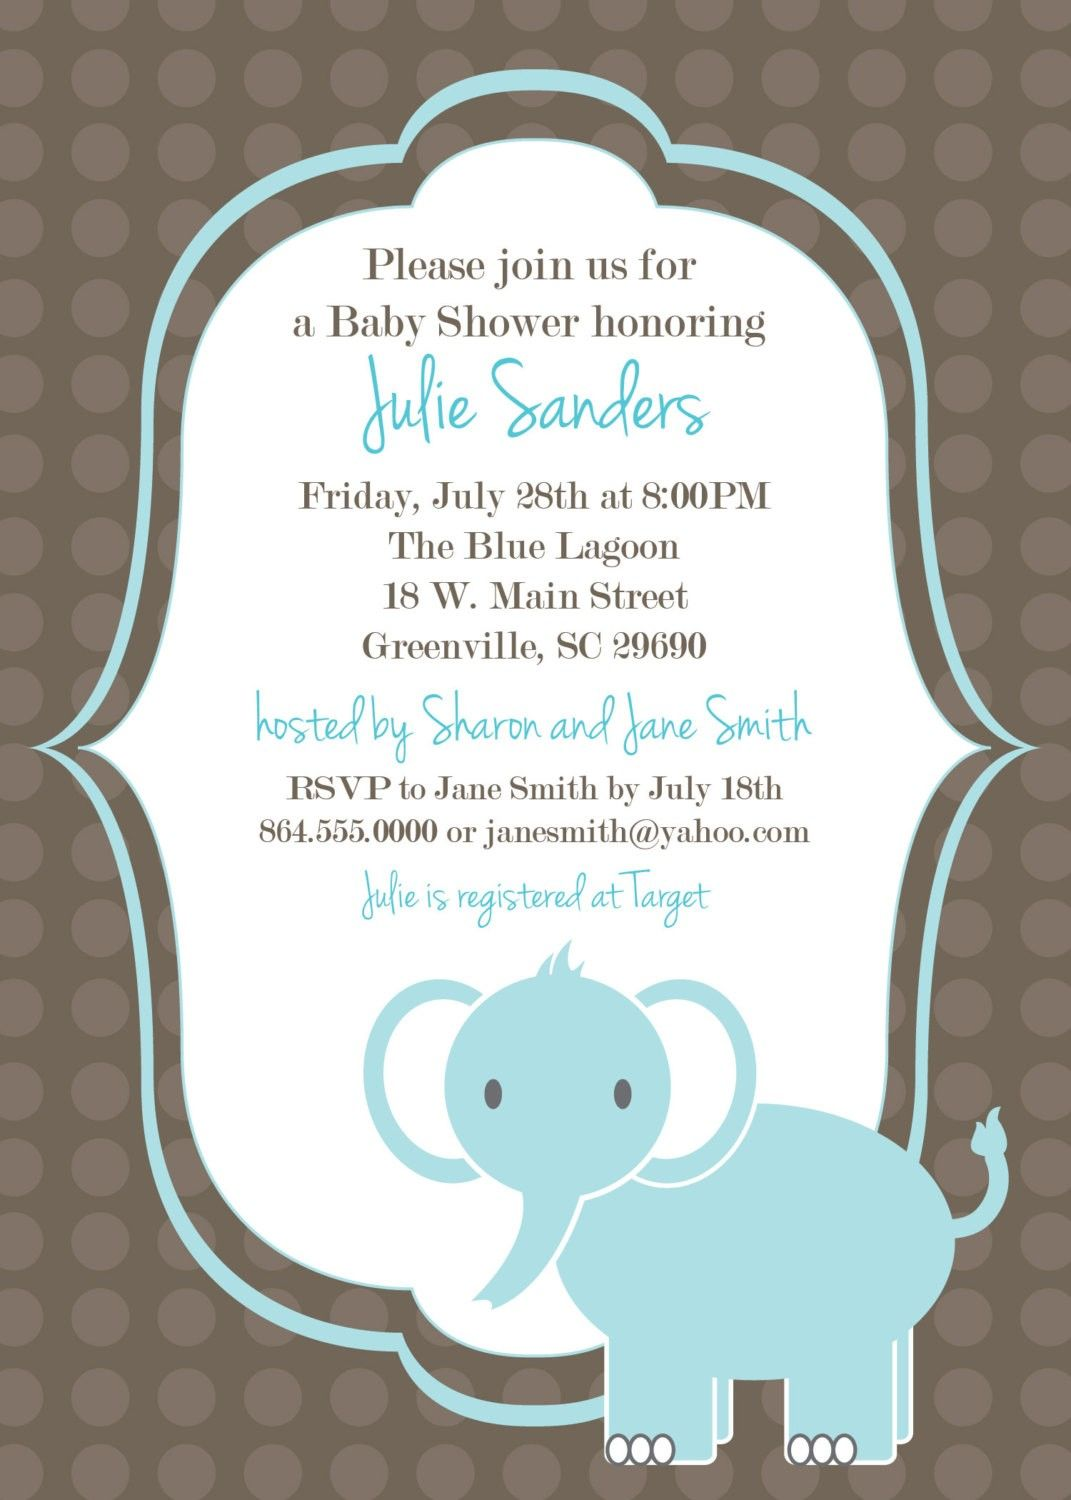 Got The Free Baby Shower Invitations